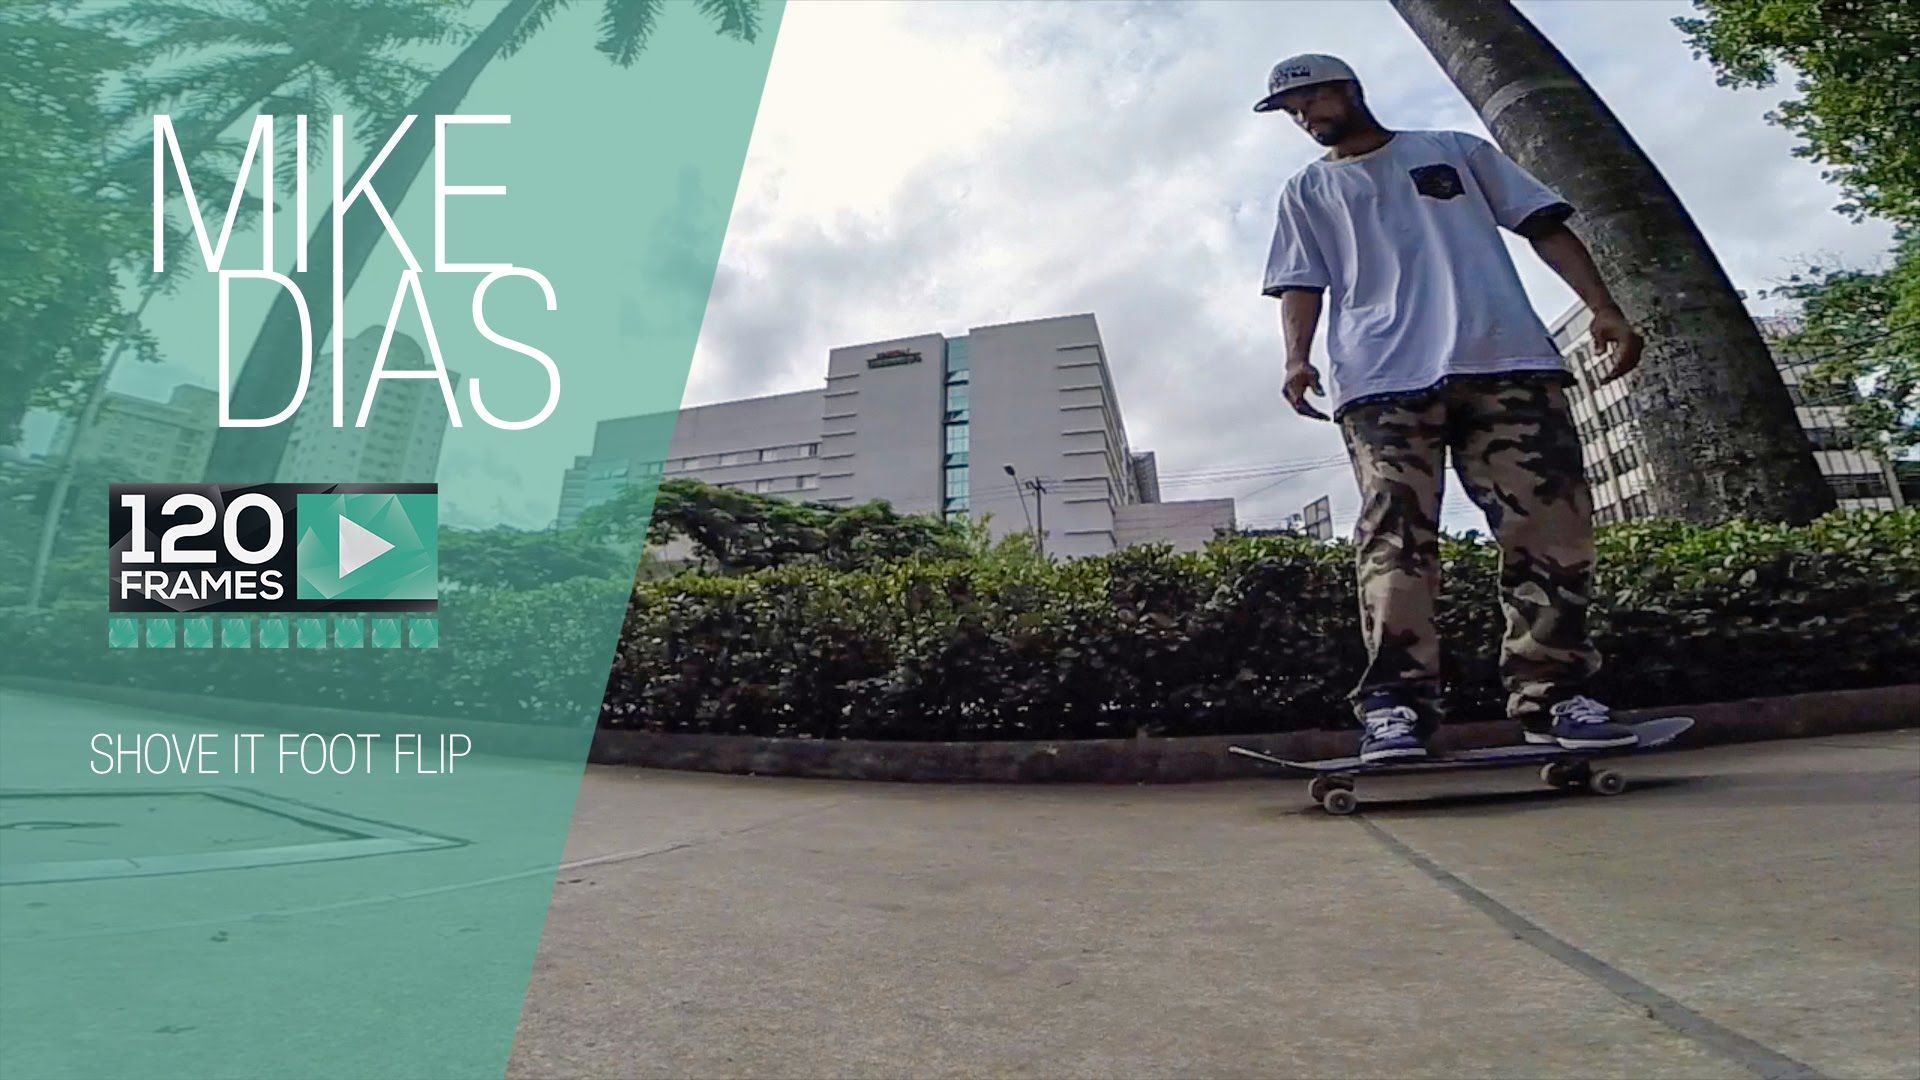 Mike Dias 120Frames - Shove it Foot Flip